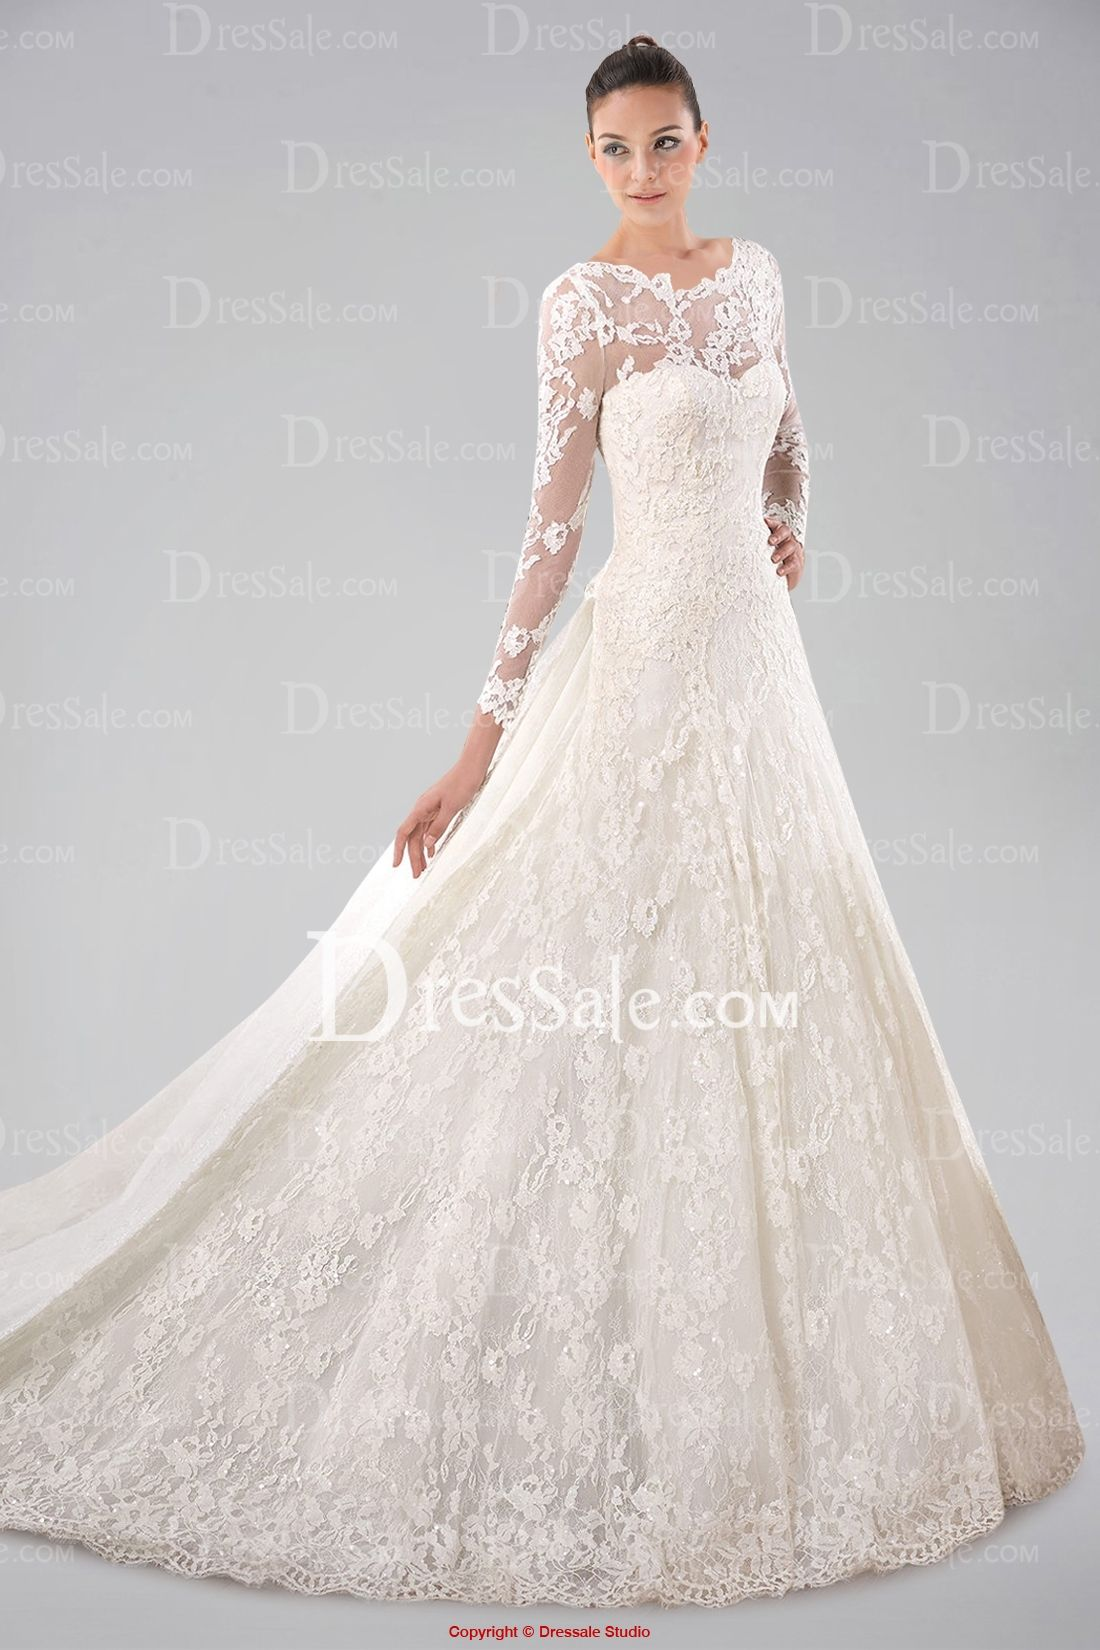 Pretty Long Sleeve Wedding Gown With Lace Overlay And Watteau